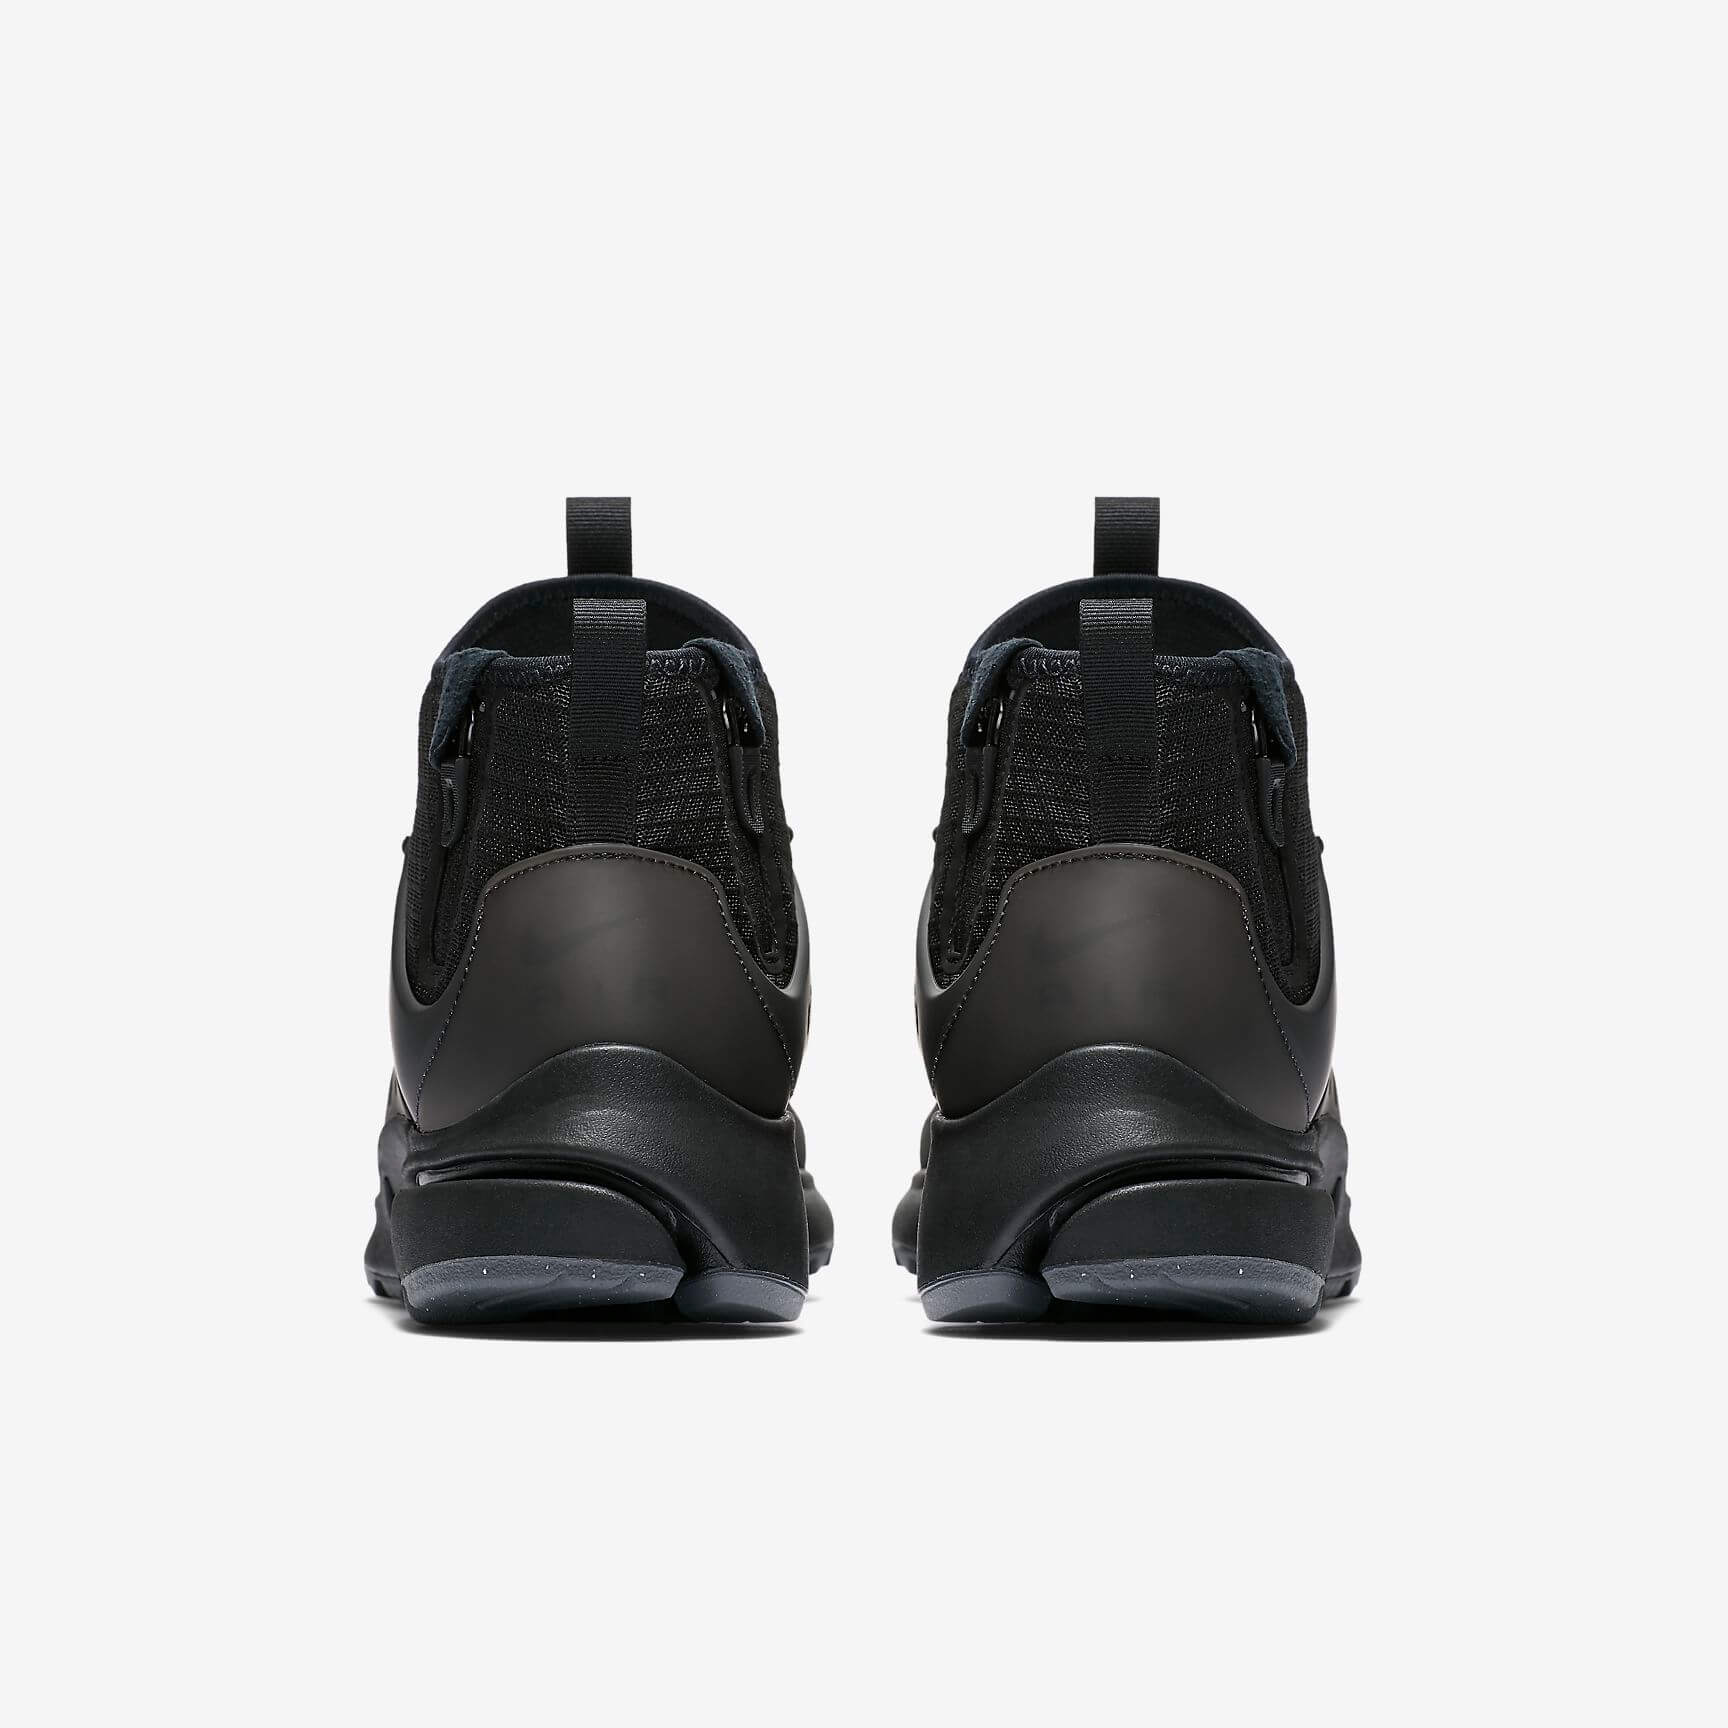 Air Presto Mid Utility Shoes for men 2